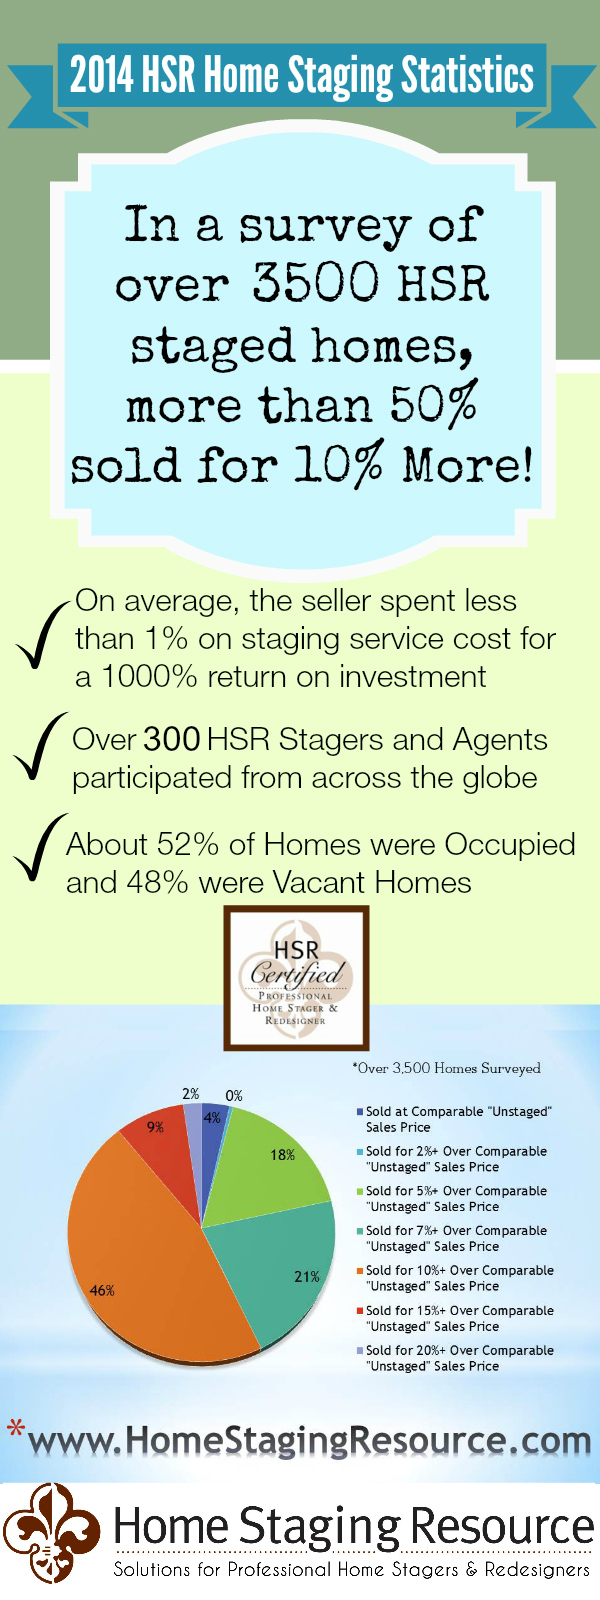 home-staging-statistics-infographic-1